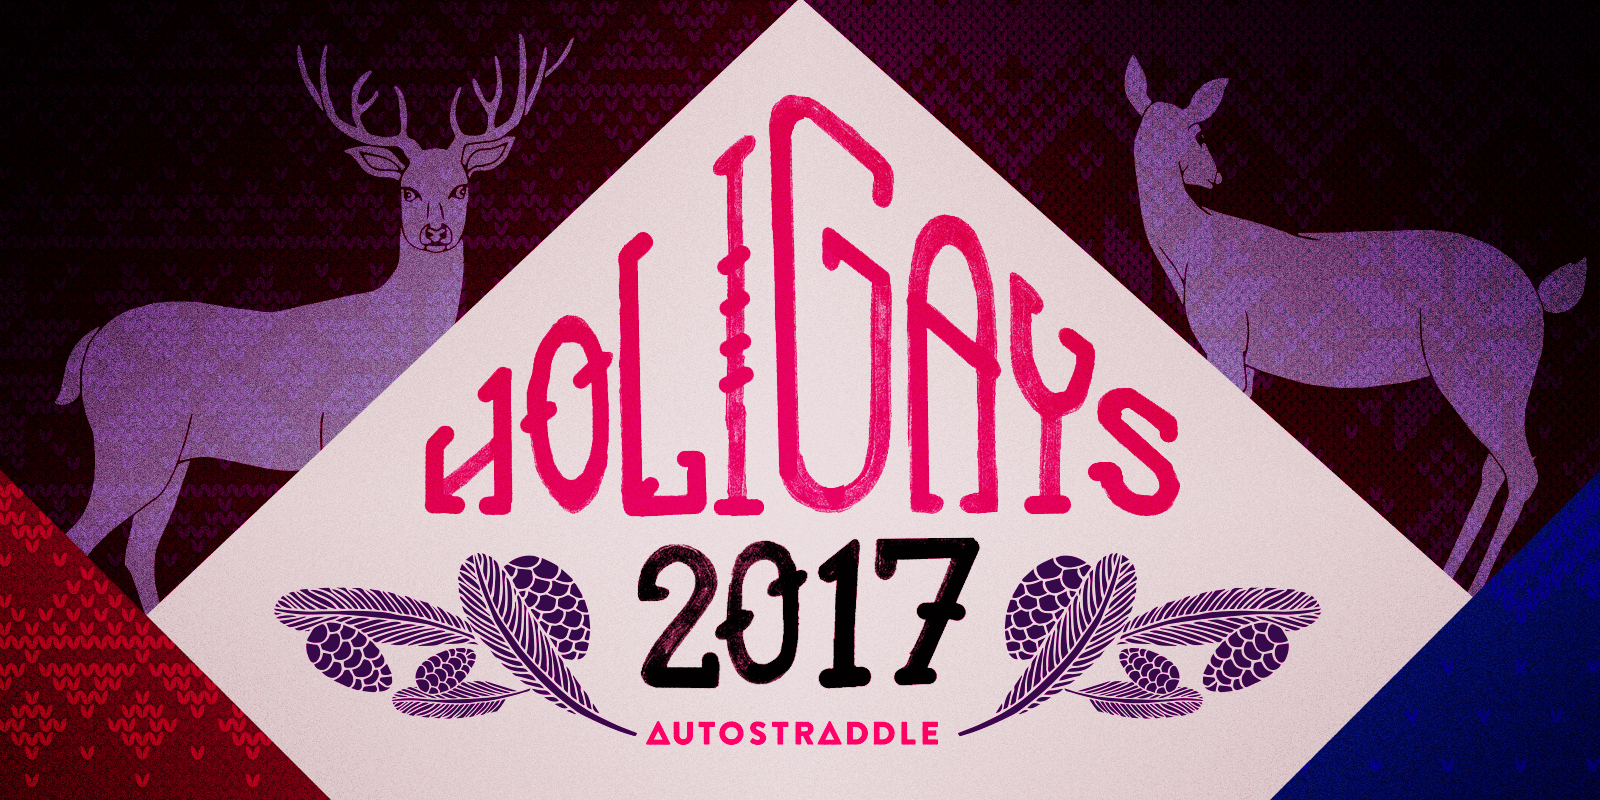 HOLIGAYS 2017 / Autostraddle